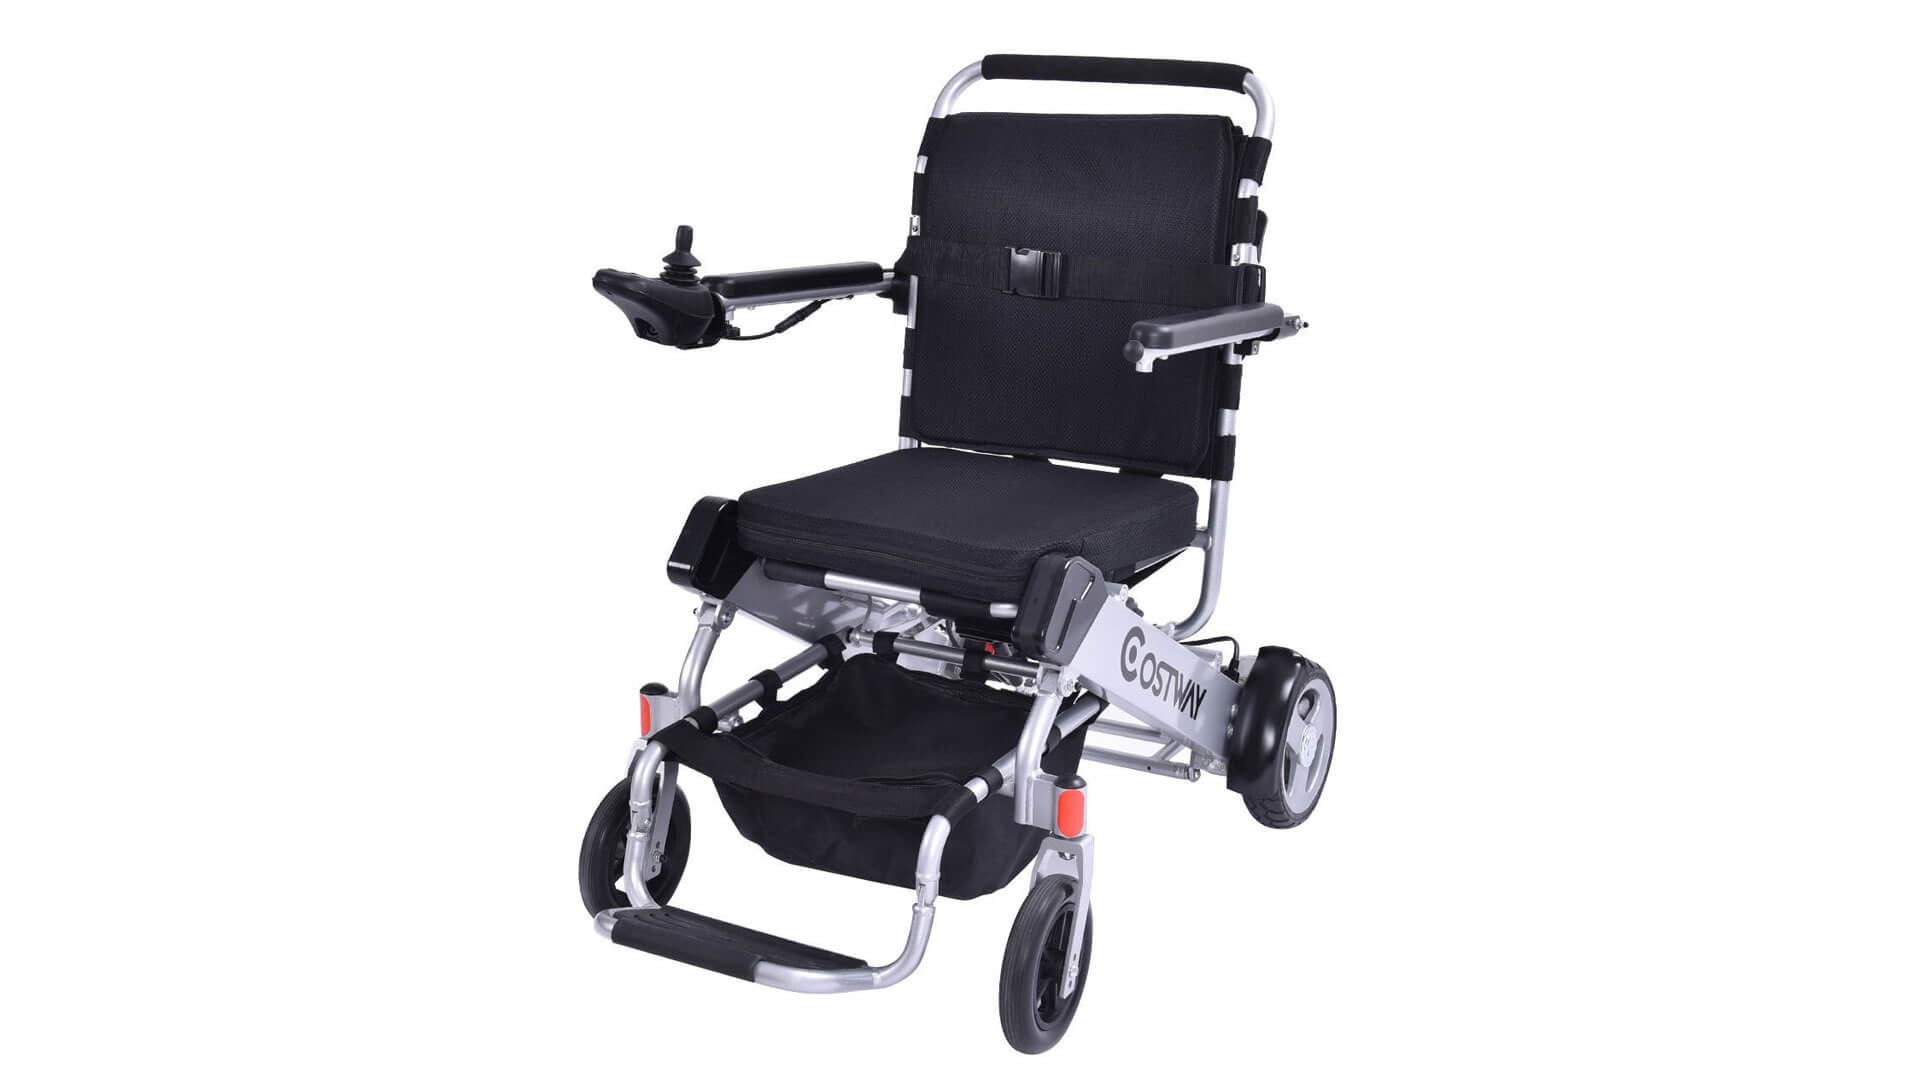 portable wheel chair traditional mexican chairs wheelchair review giantex lightweight heavy duty aluminium aluminum is this foldable model for you